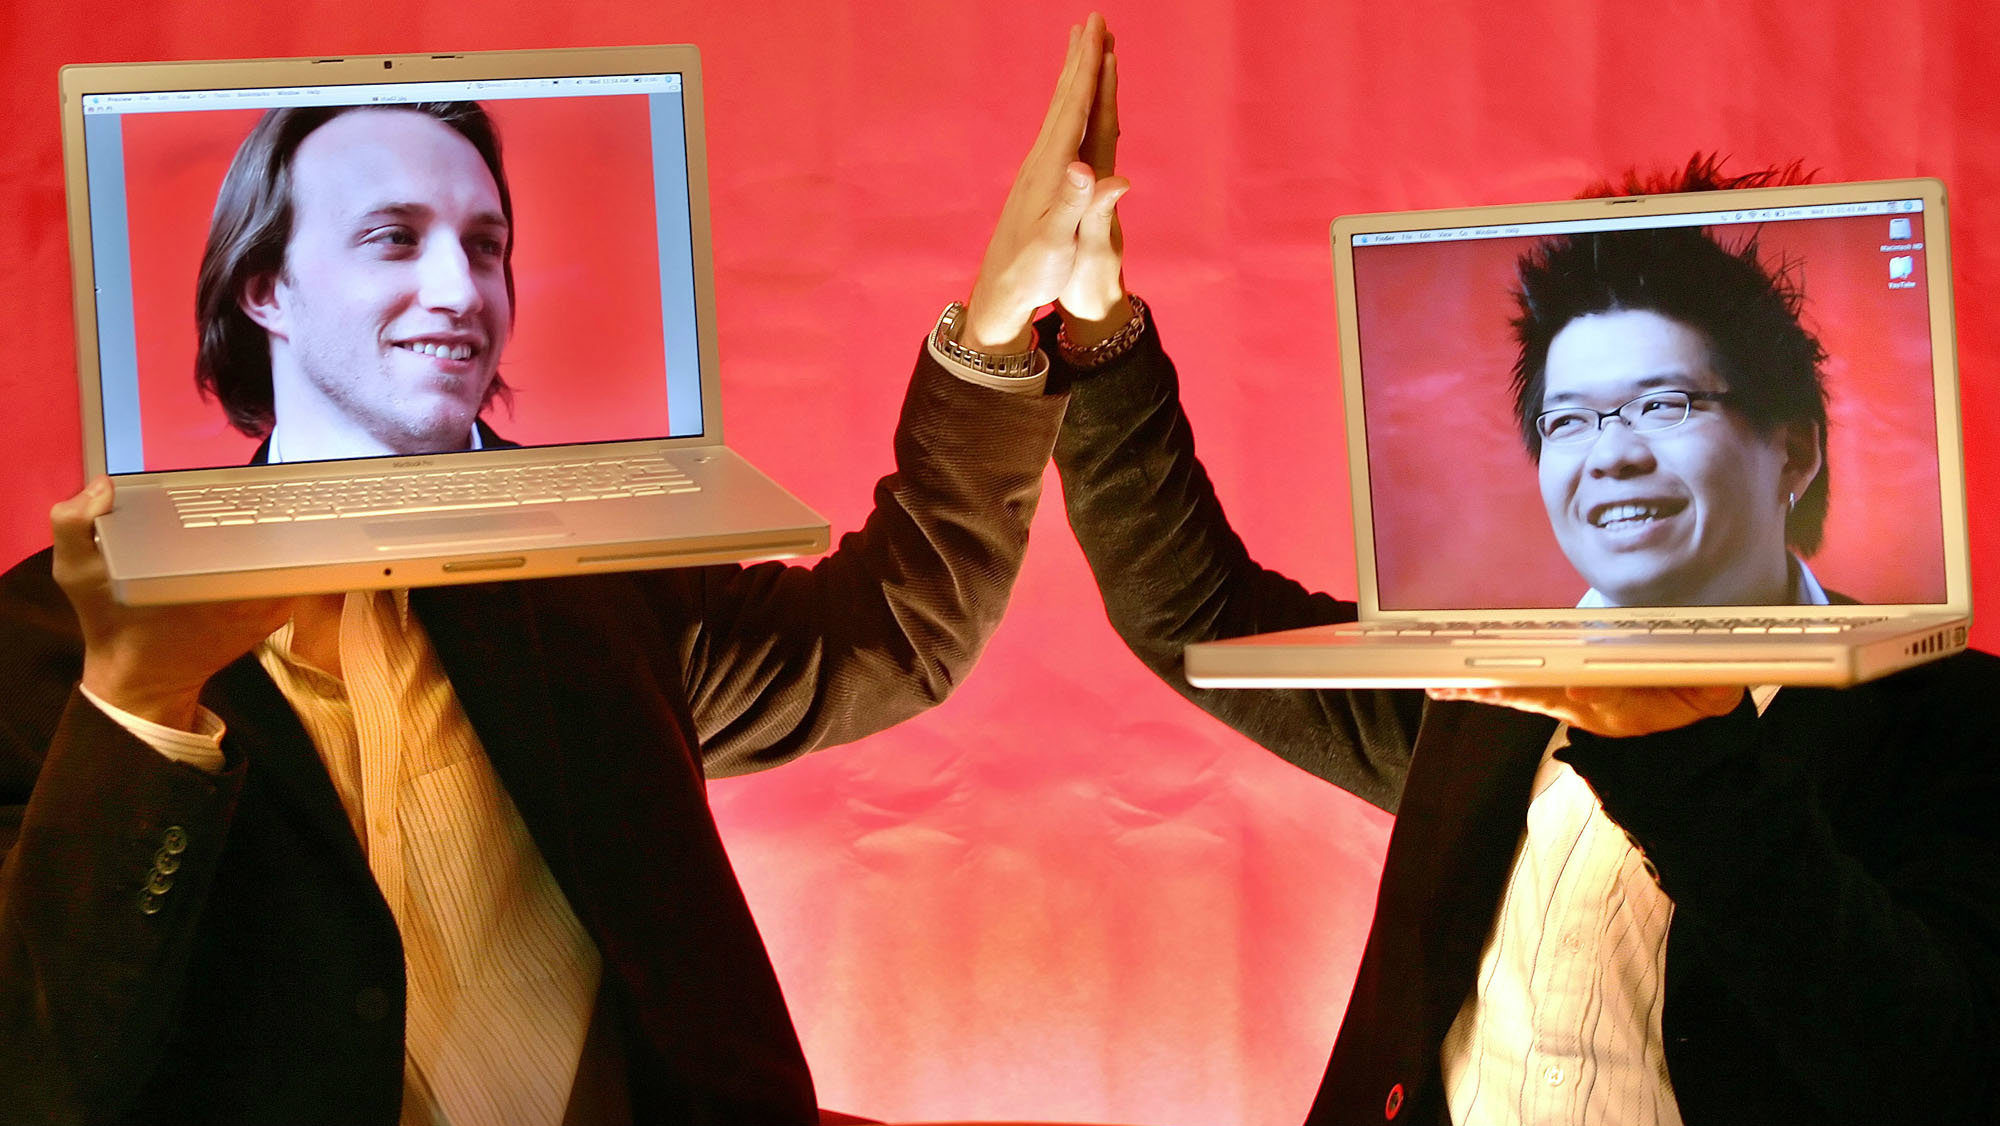 YouTube co-founders Chad Hurley and Steven Chen pose with their laptops